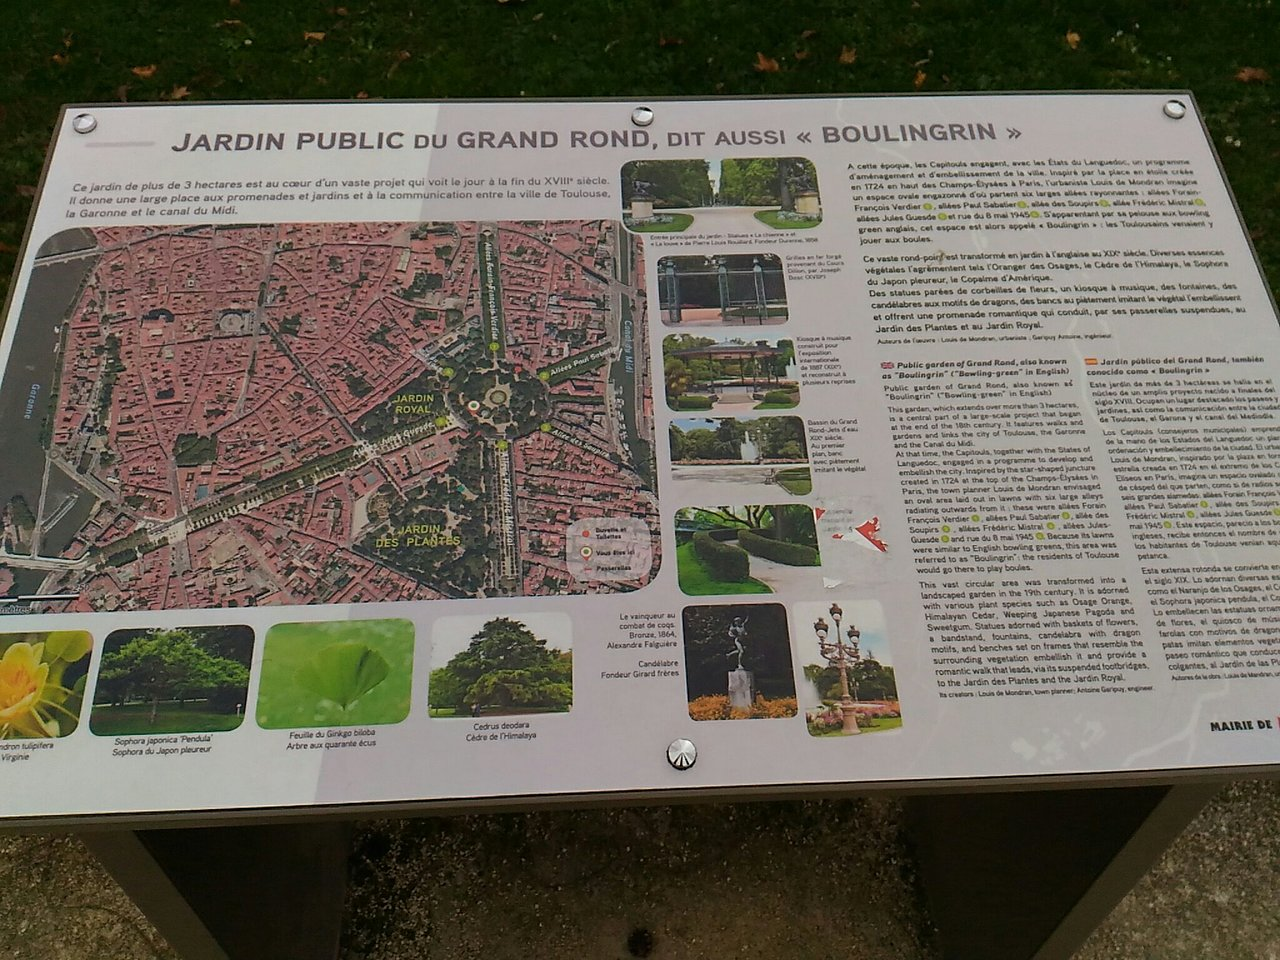 Jardin De L Himalaya Frais Jardin Du Grand Rond toulouse 2020 All You Need to Know